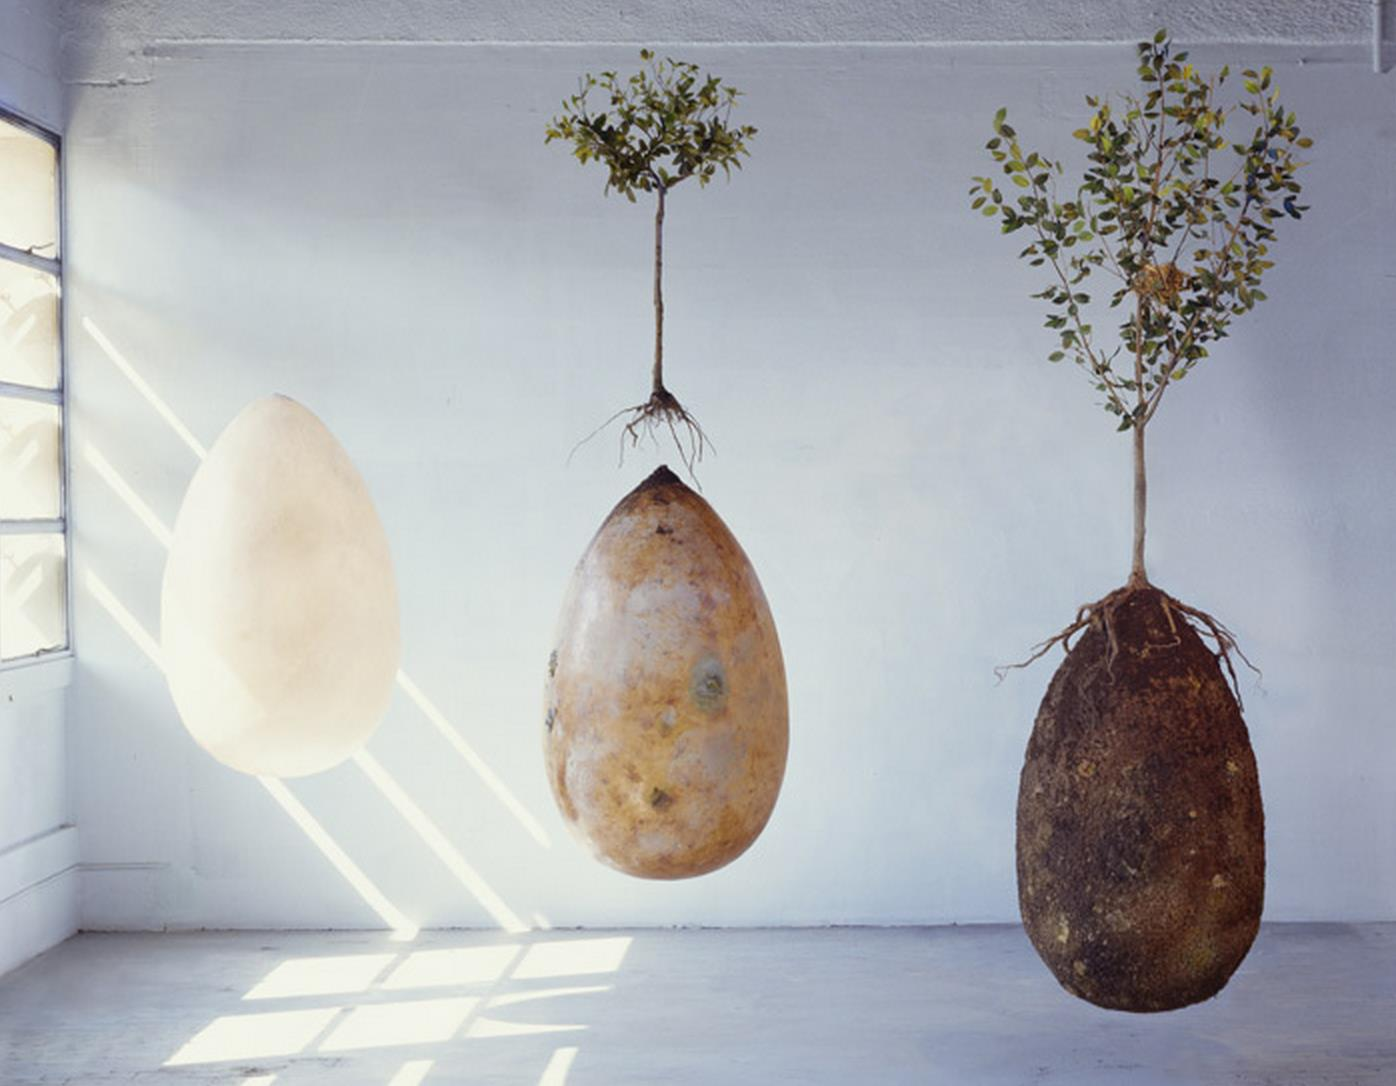 Organic Burial Pods To Replace Tombstones With Trees